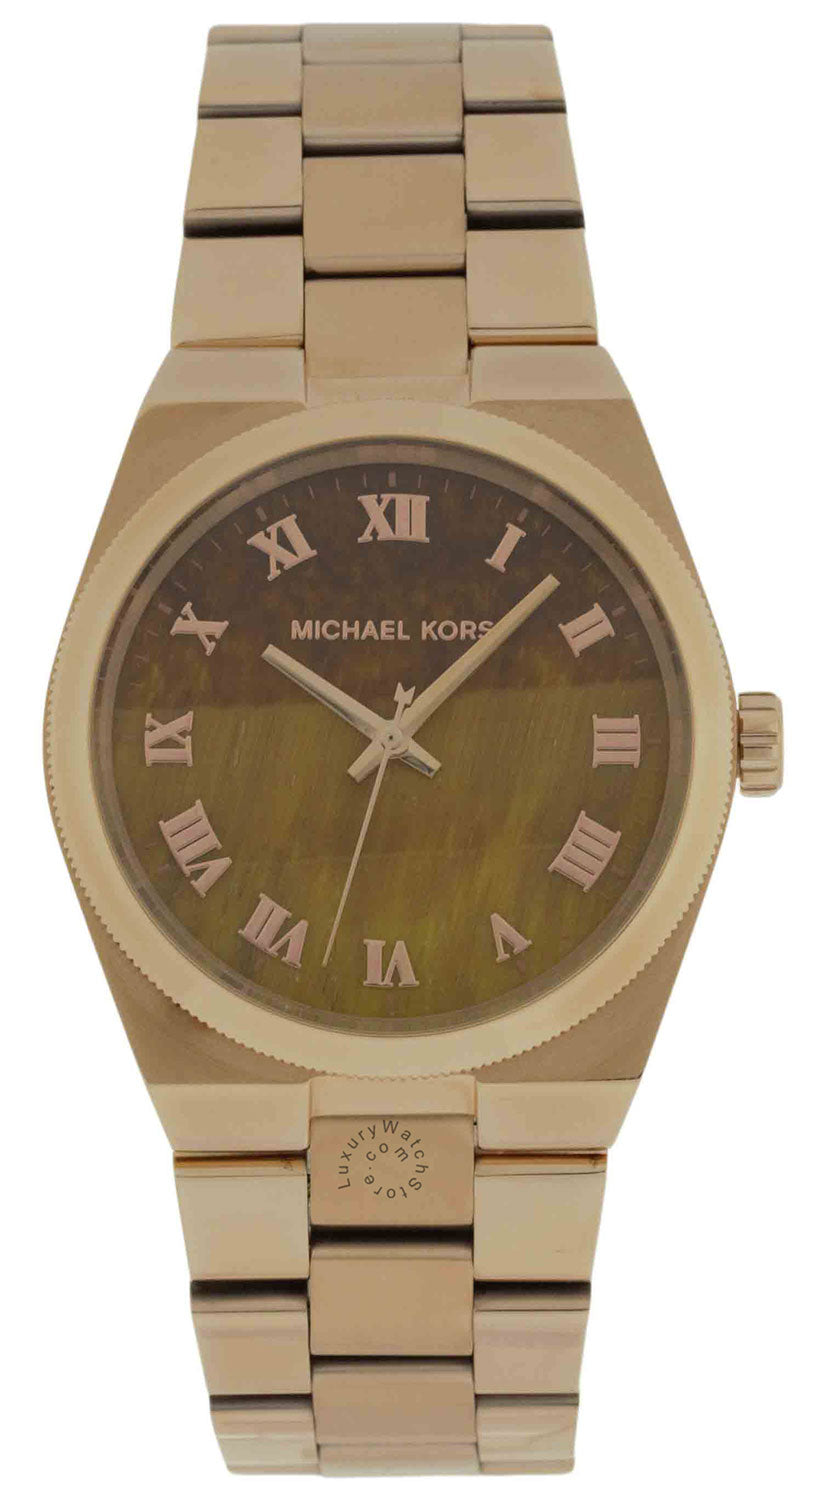 Michael Kors MK5895 Channing Brown Dial Stainless Steel Women's Watch